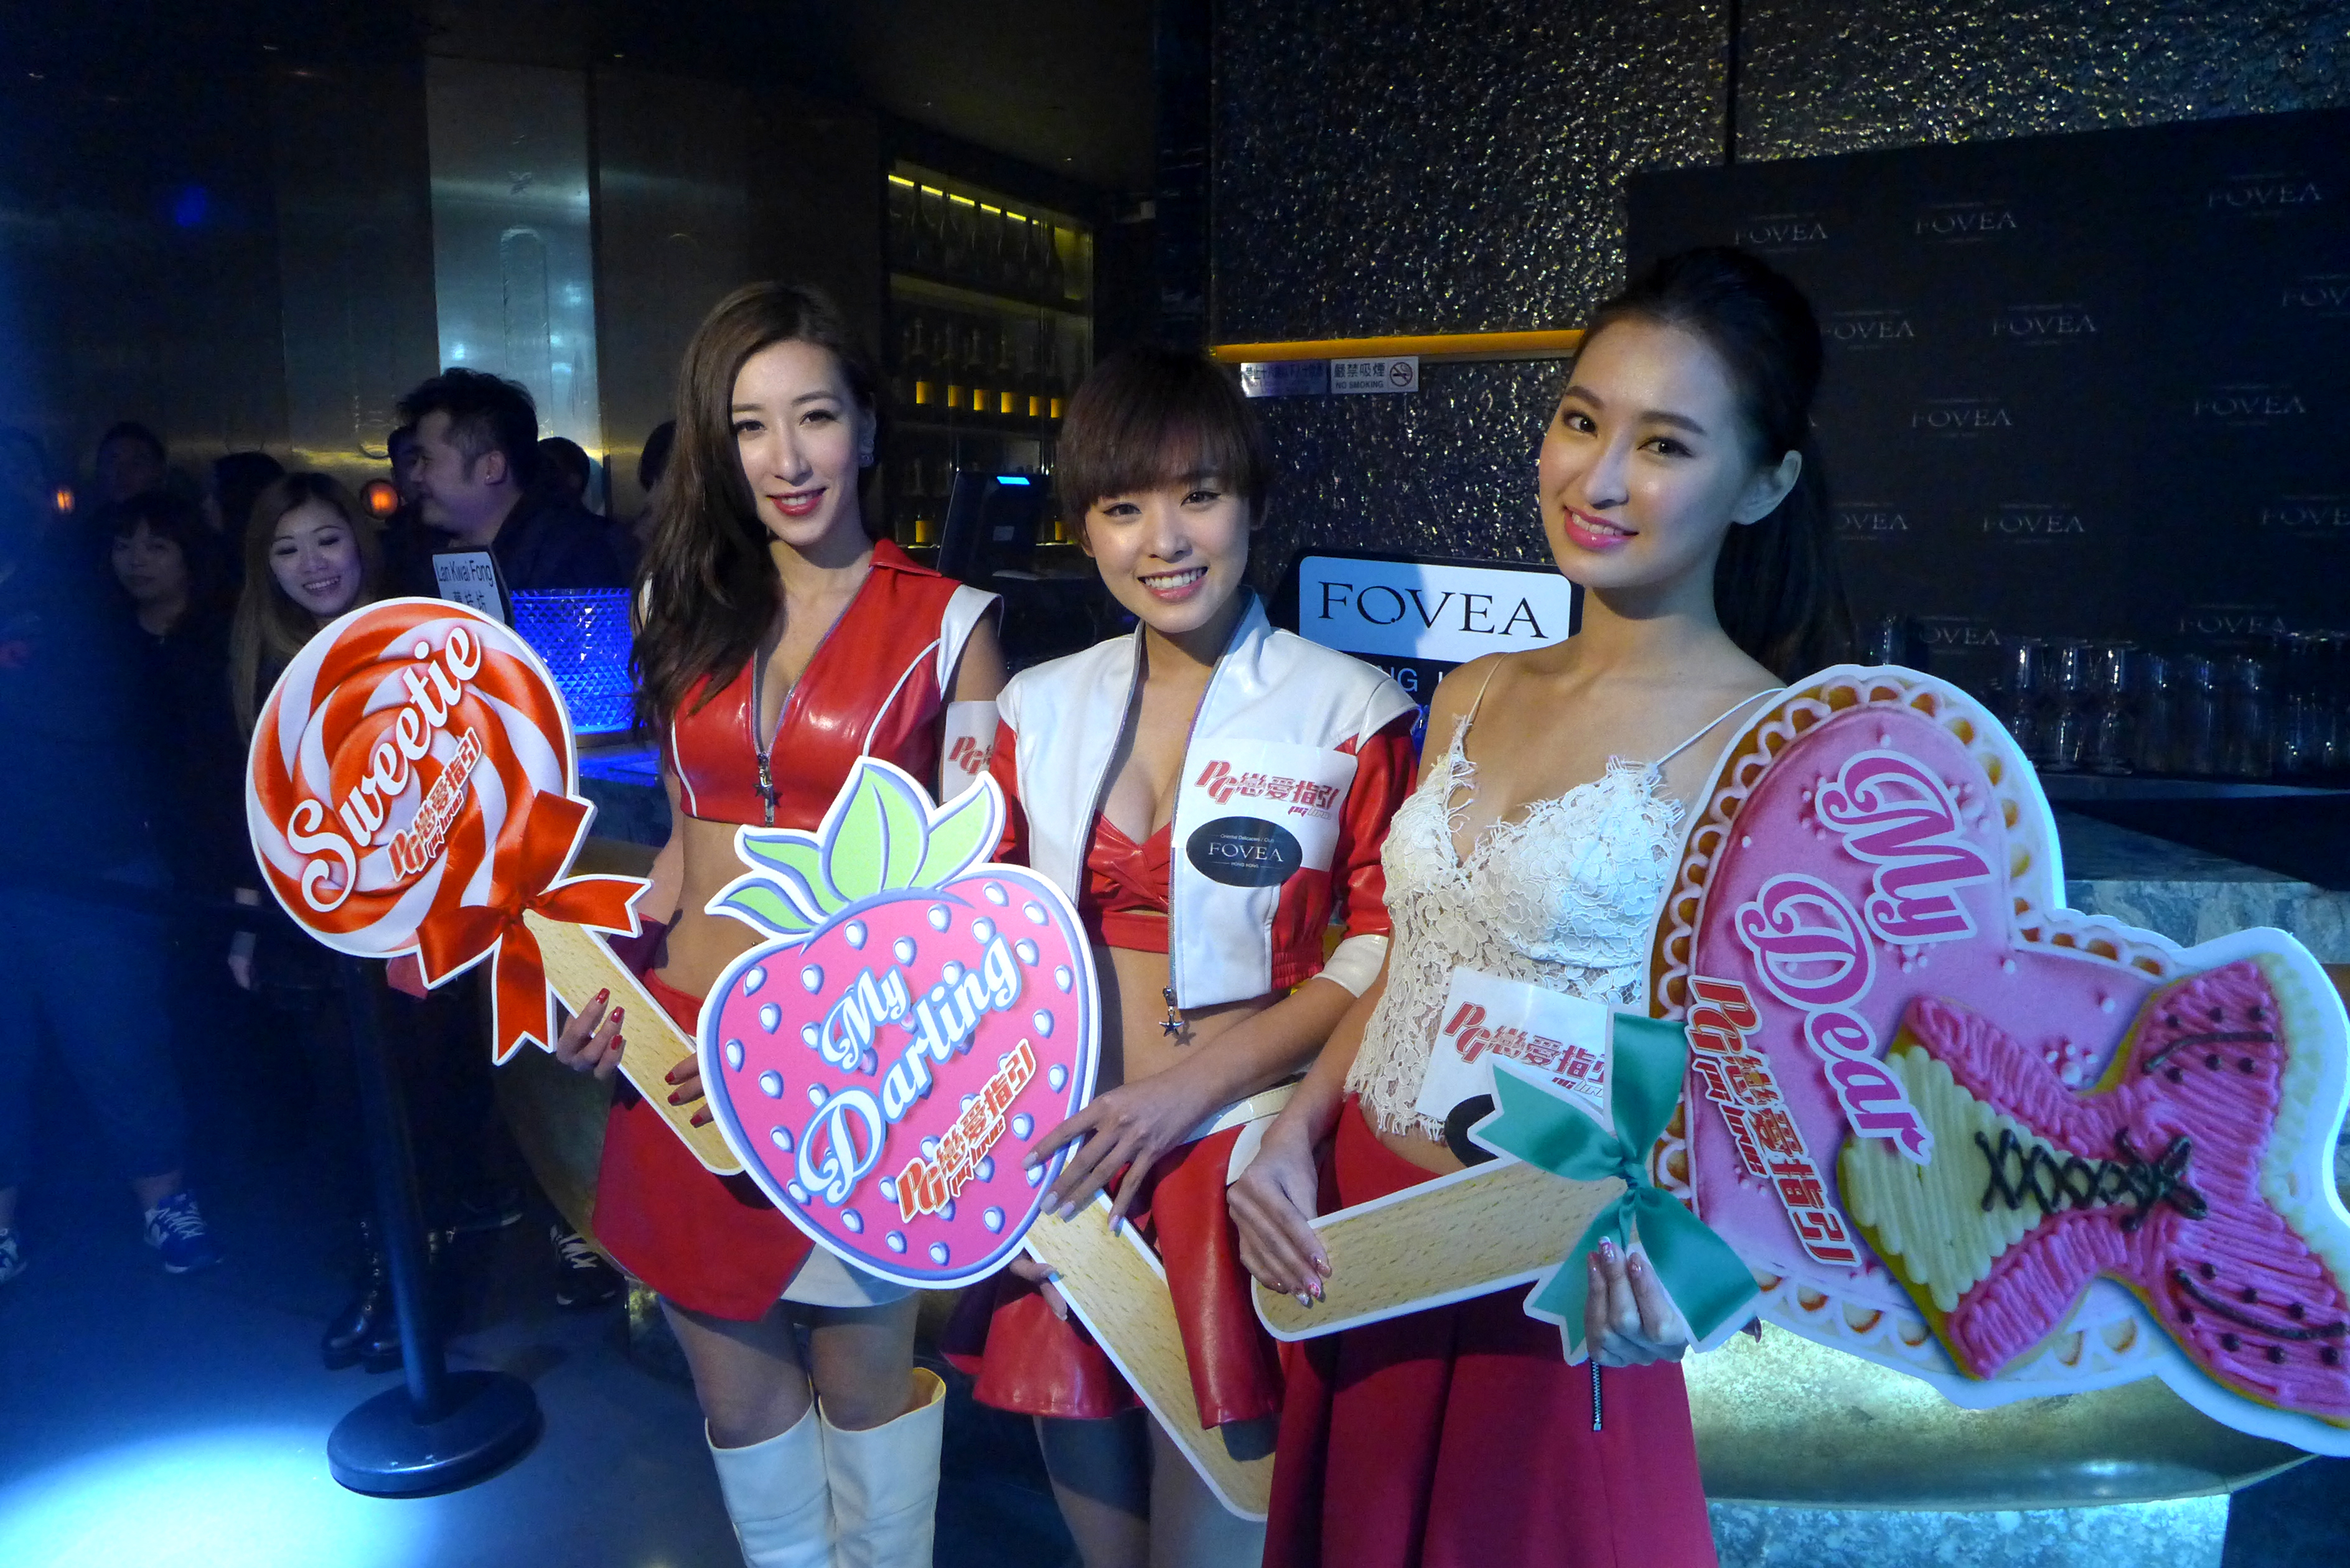 Valentine Day event at LKF Fovea Club